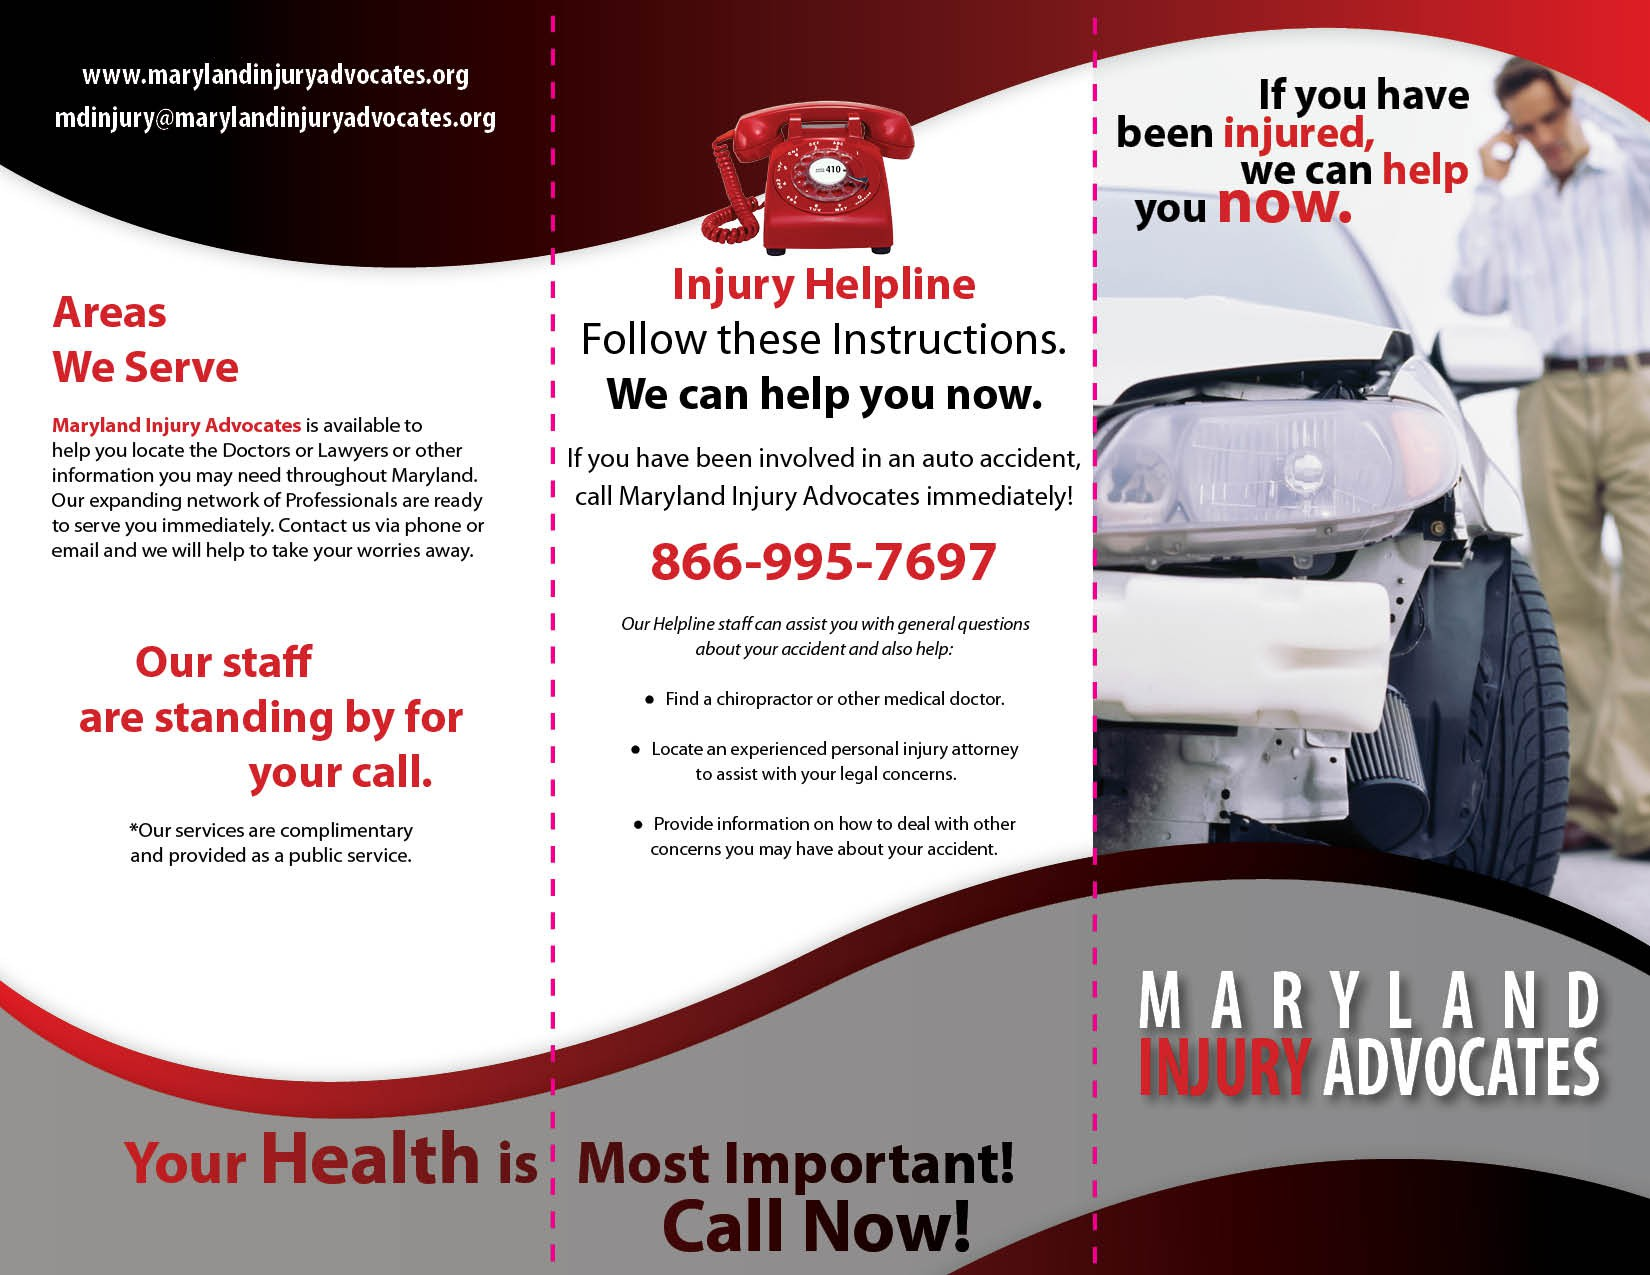 New Brochure design for Maryland Injury Advocates